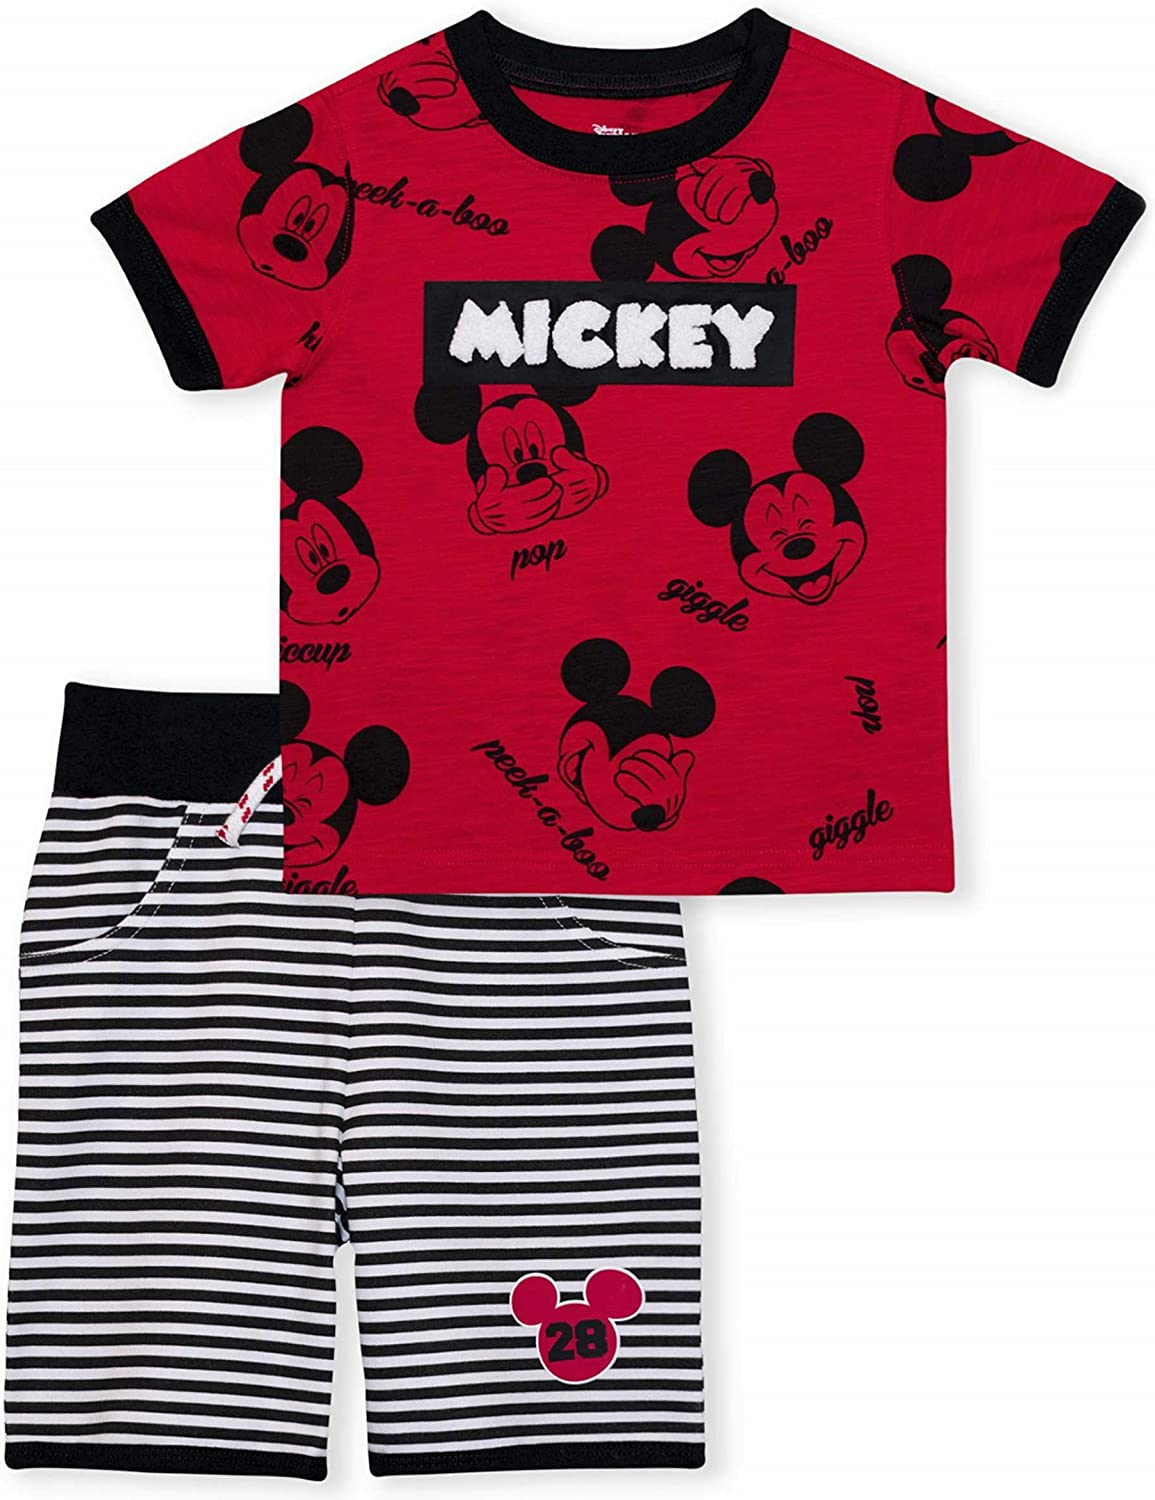 Mickey Mouse Short Sleeve Shirt and Shorts Outfit Set for Babies and Toddlers